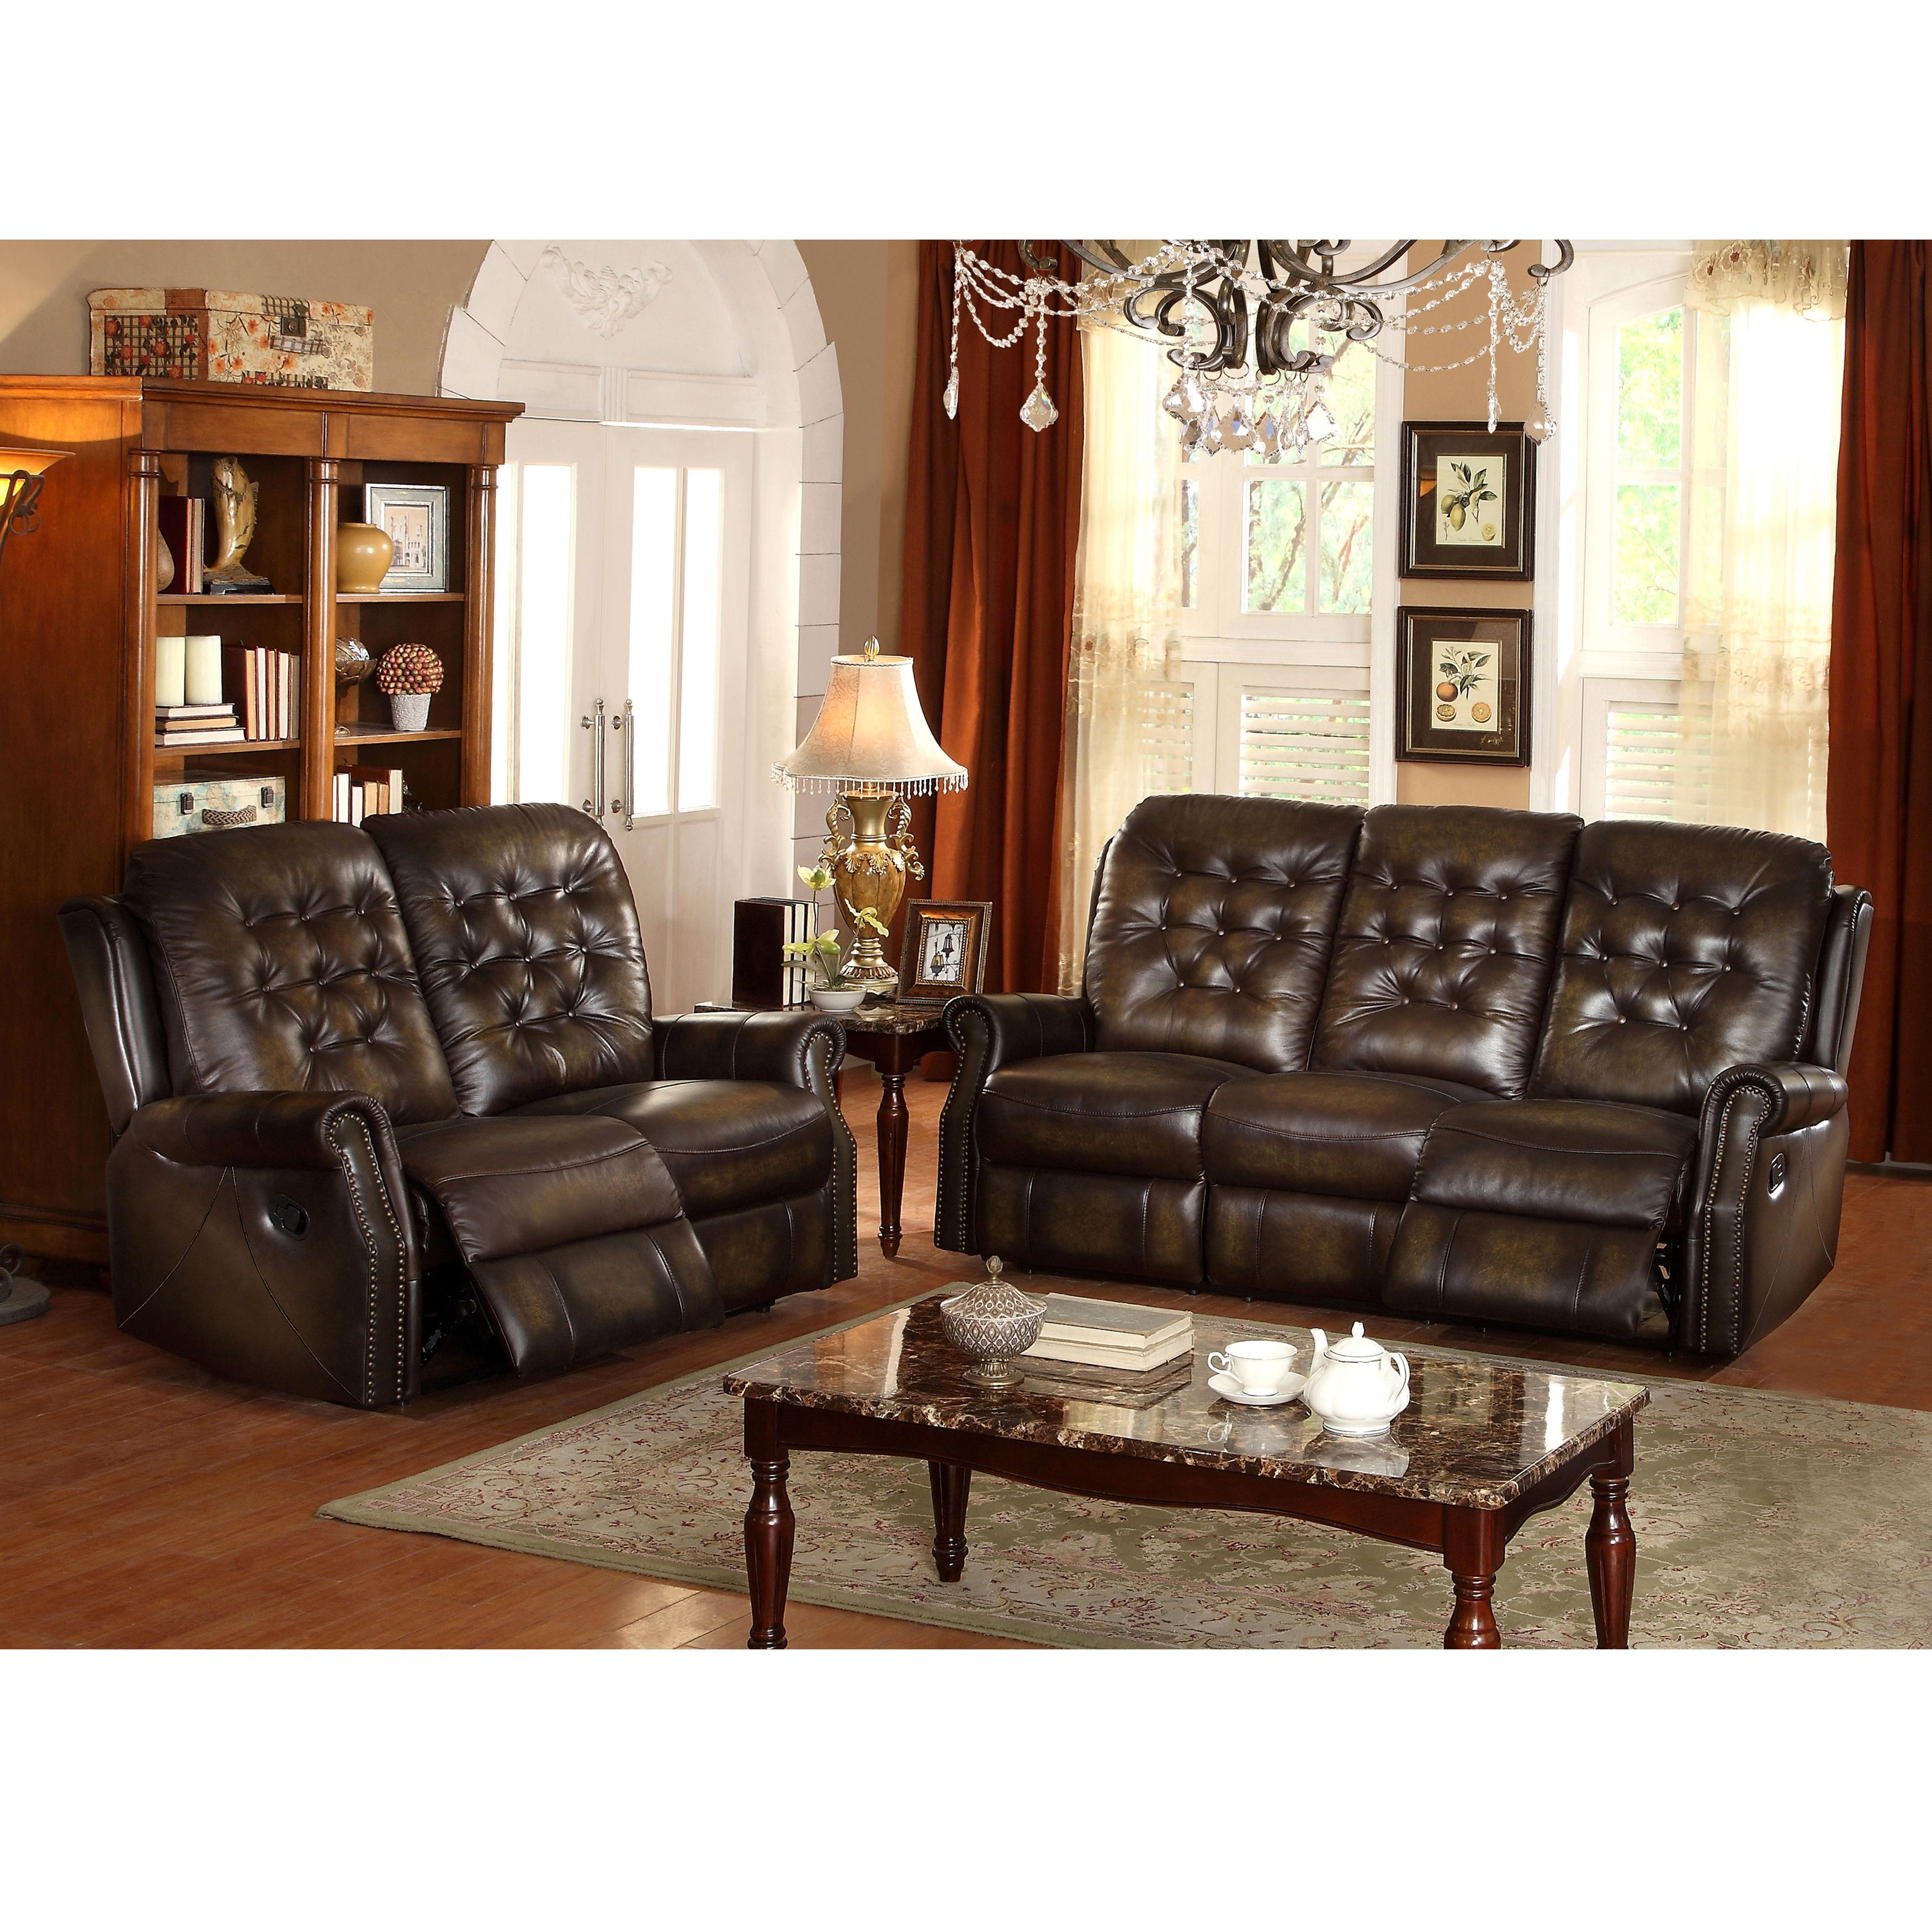 Lovely Relax In Comfort And Style With This Ultra Premium Reclining Leather Sofa  And Leather Loveseat Set. This Luxurious Leather Living Room Furniture Is  ... Design Ideas